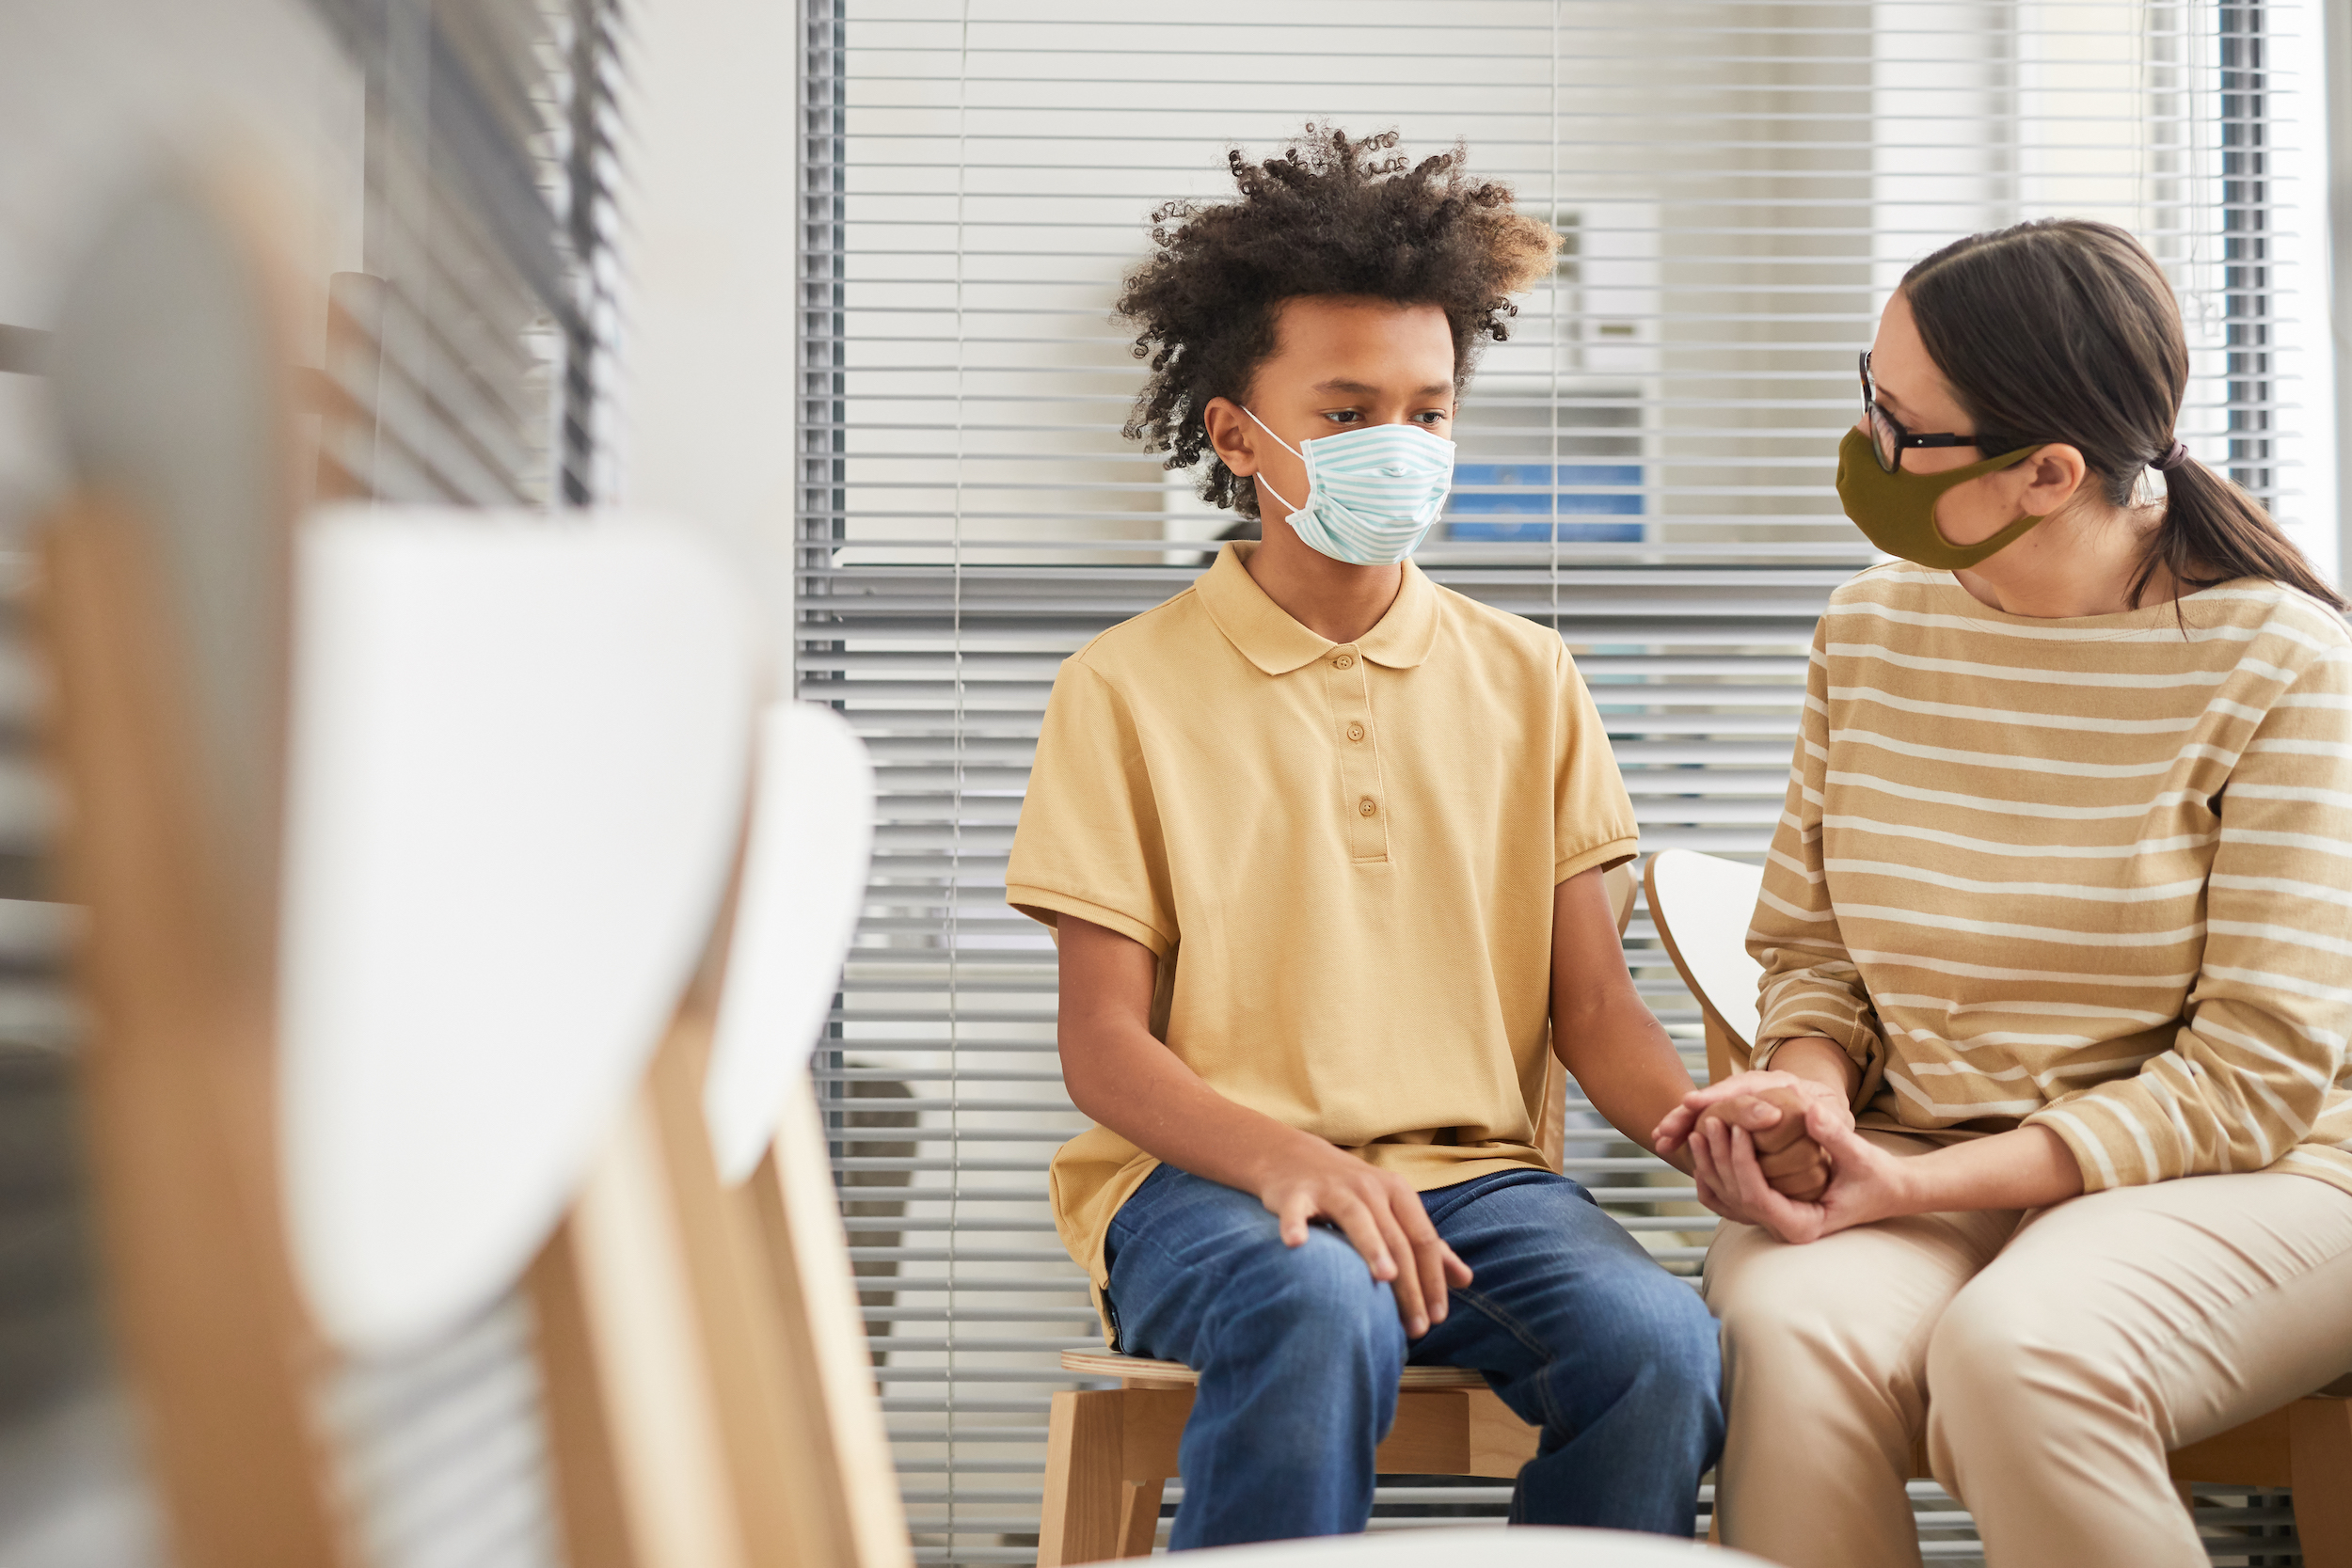 An Unvaccinated U.S. Teacher took off mask for read-aloud and infected half the class with COVID-19